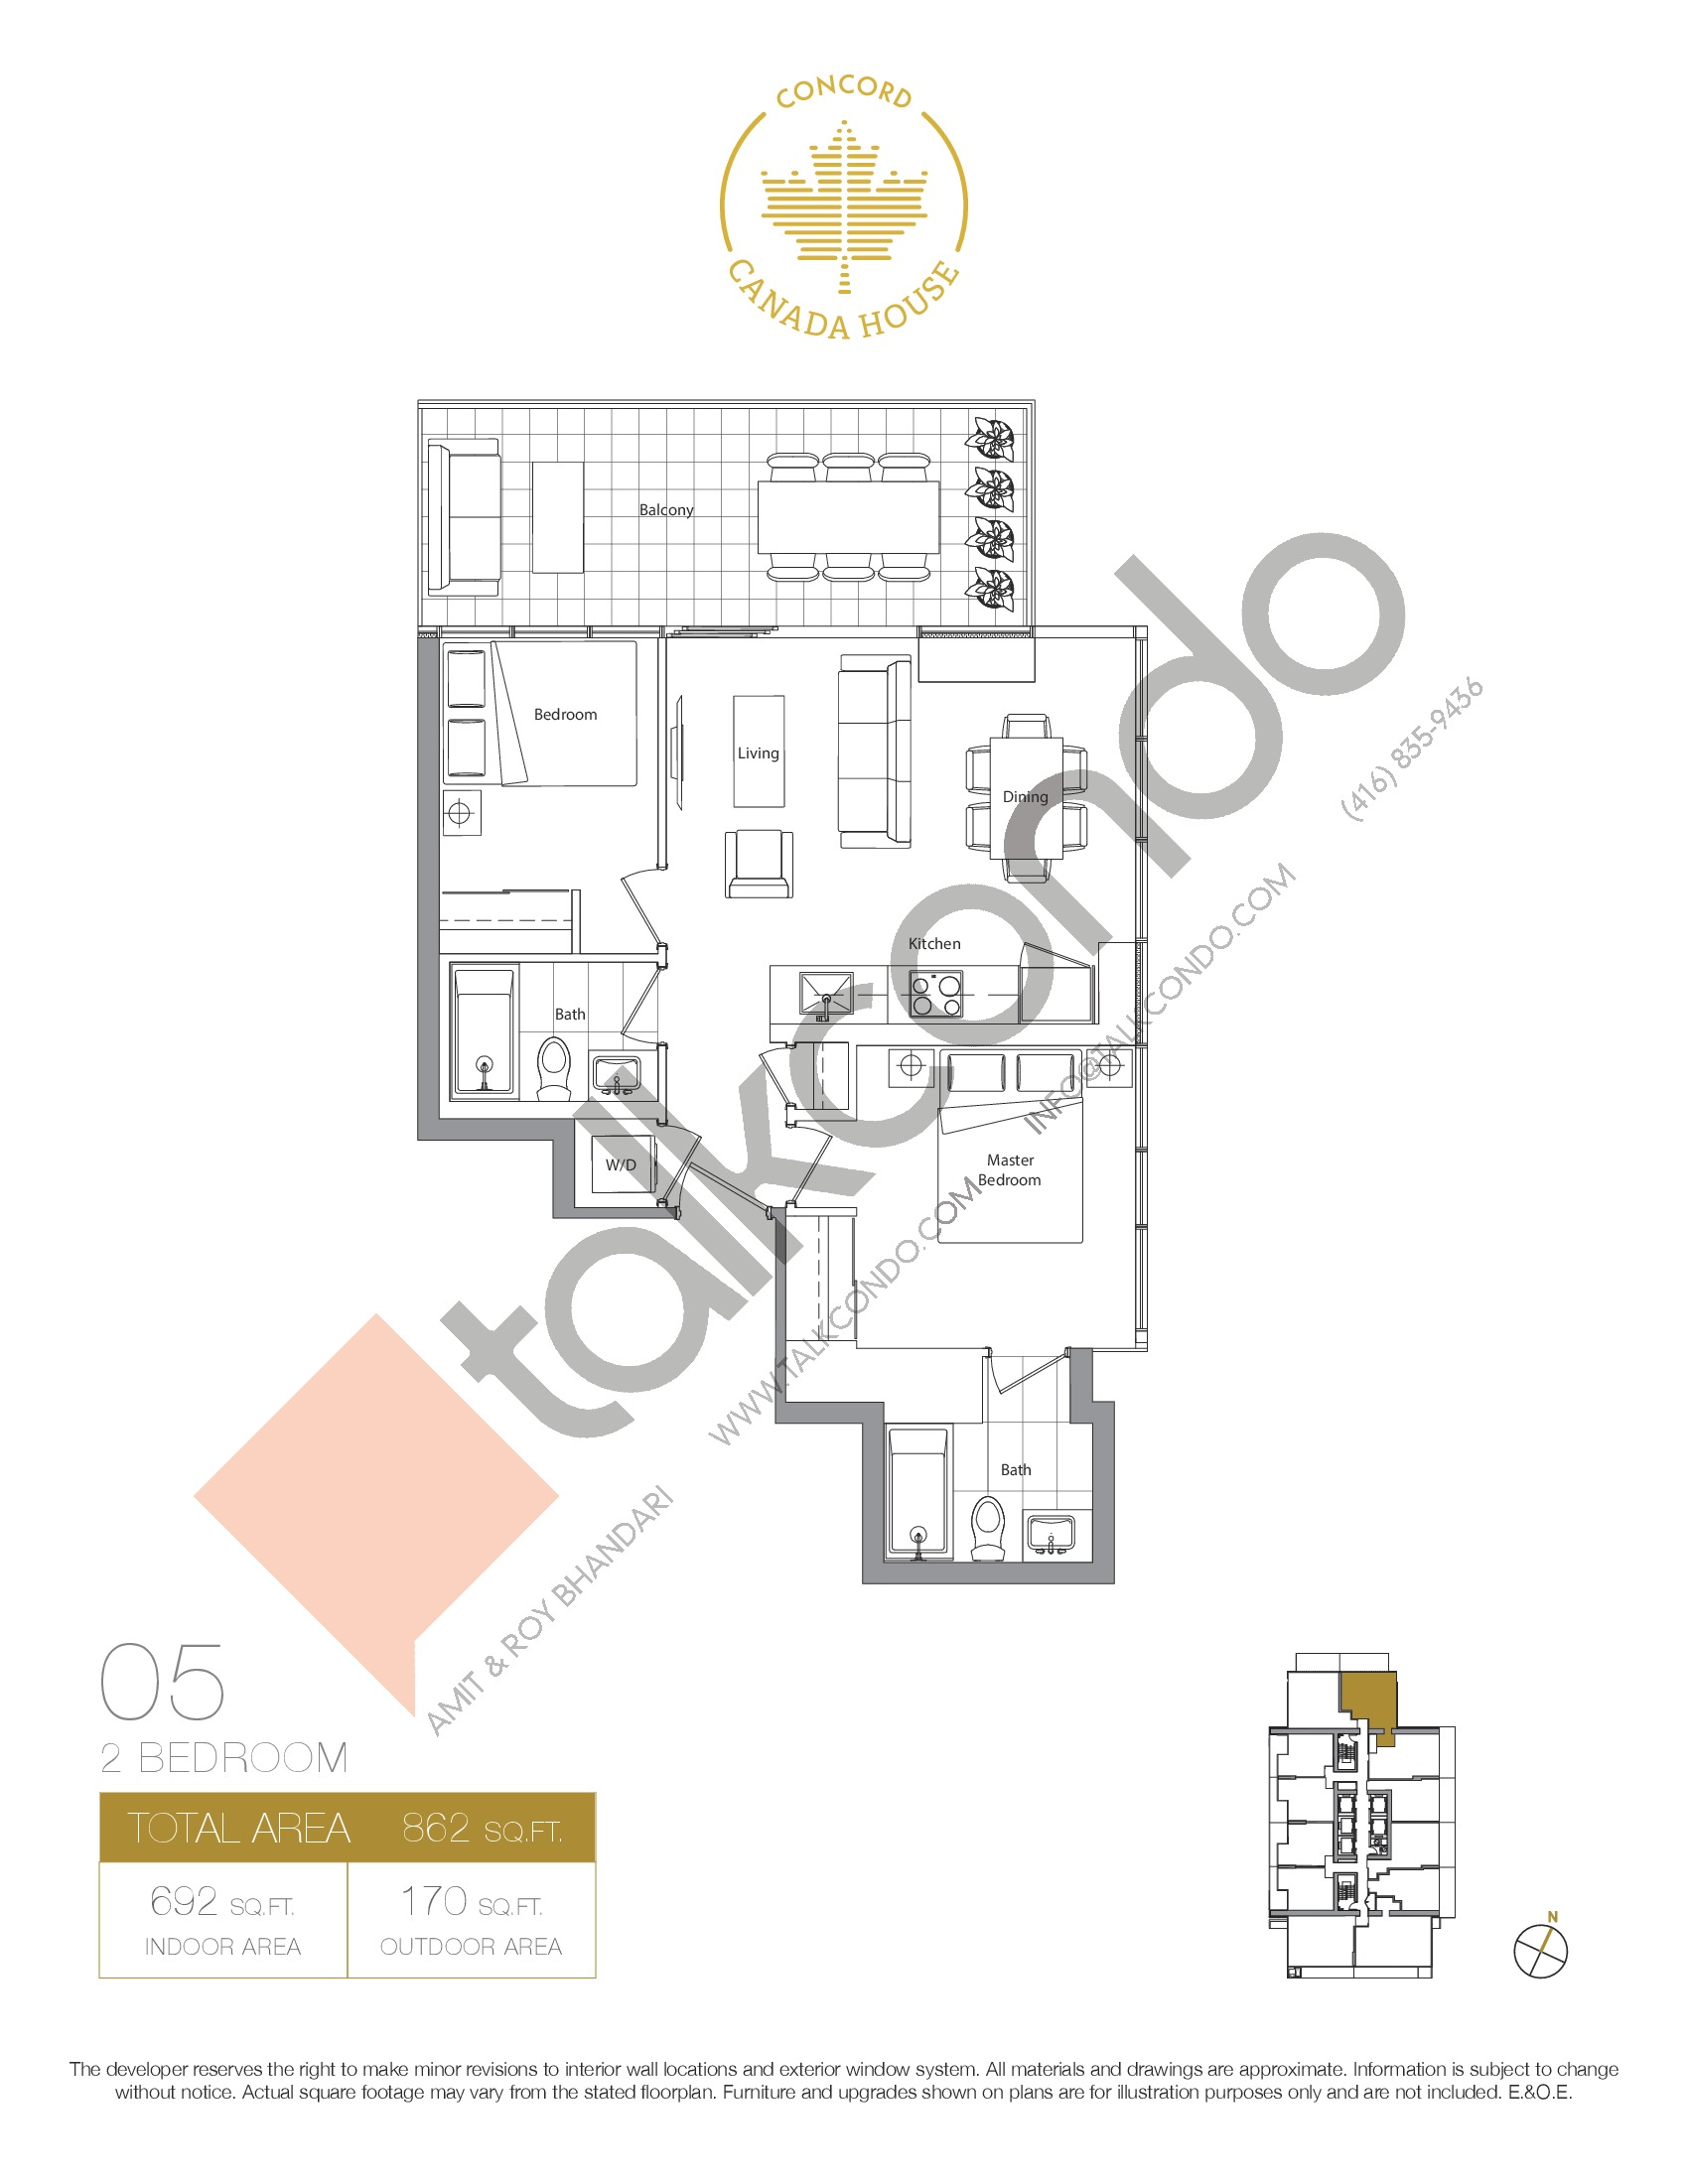 05 - West Tower Floor Plan at Concord Canada House Condos - 692 sq.ft